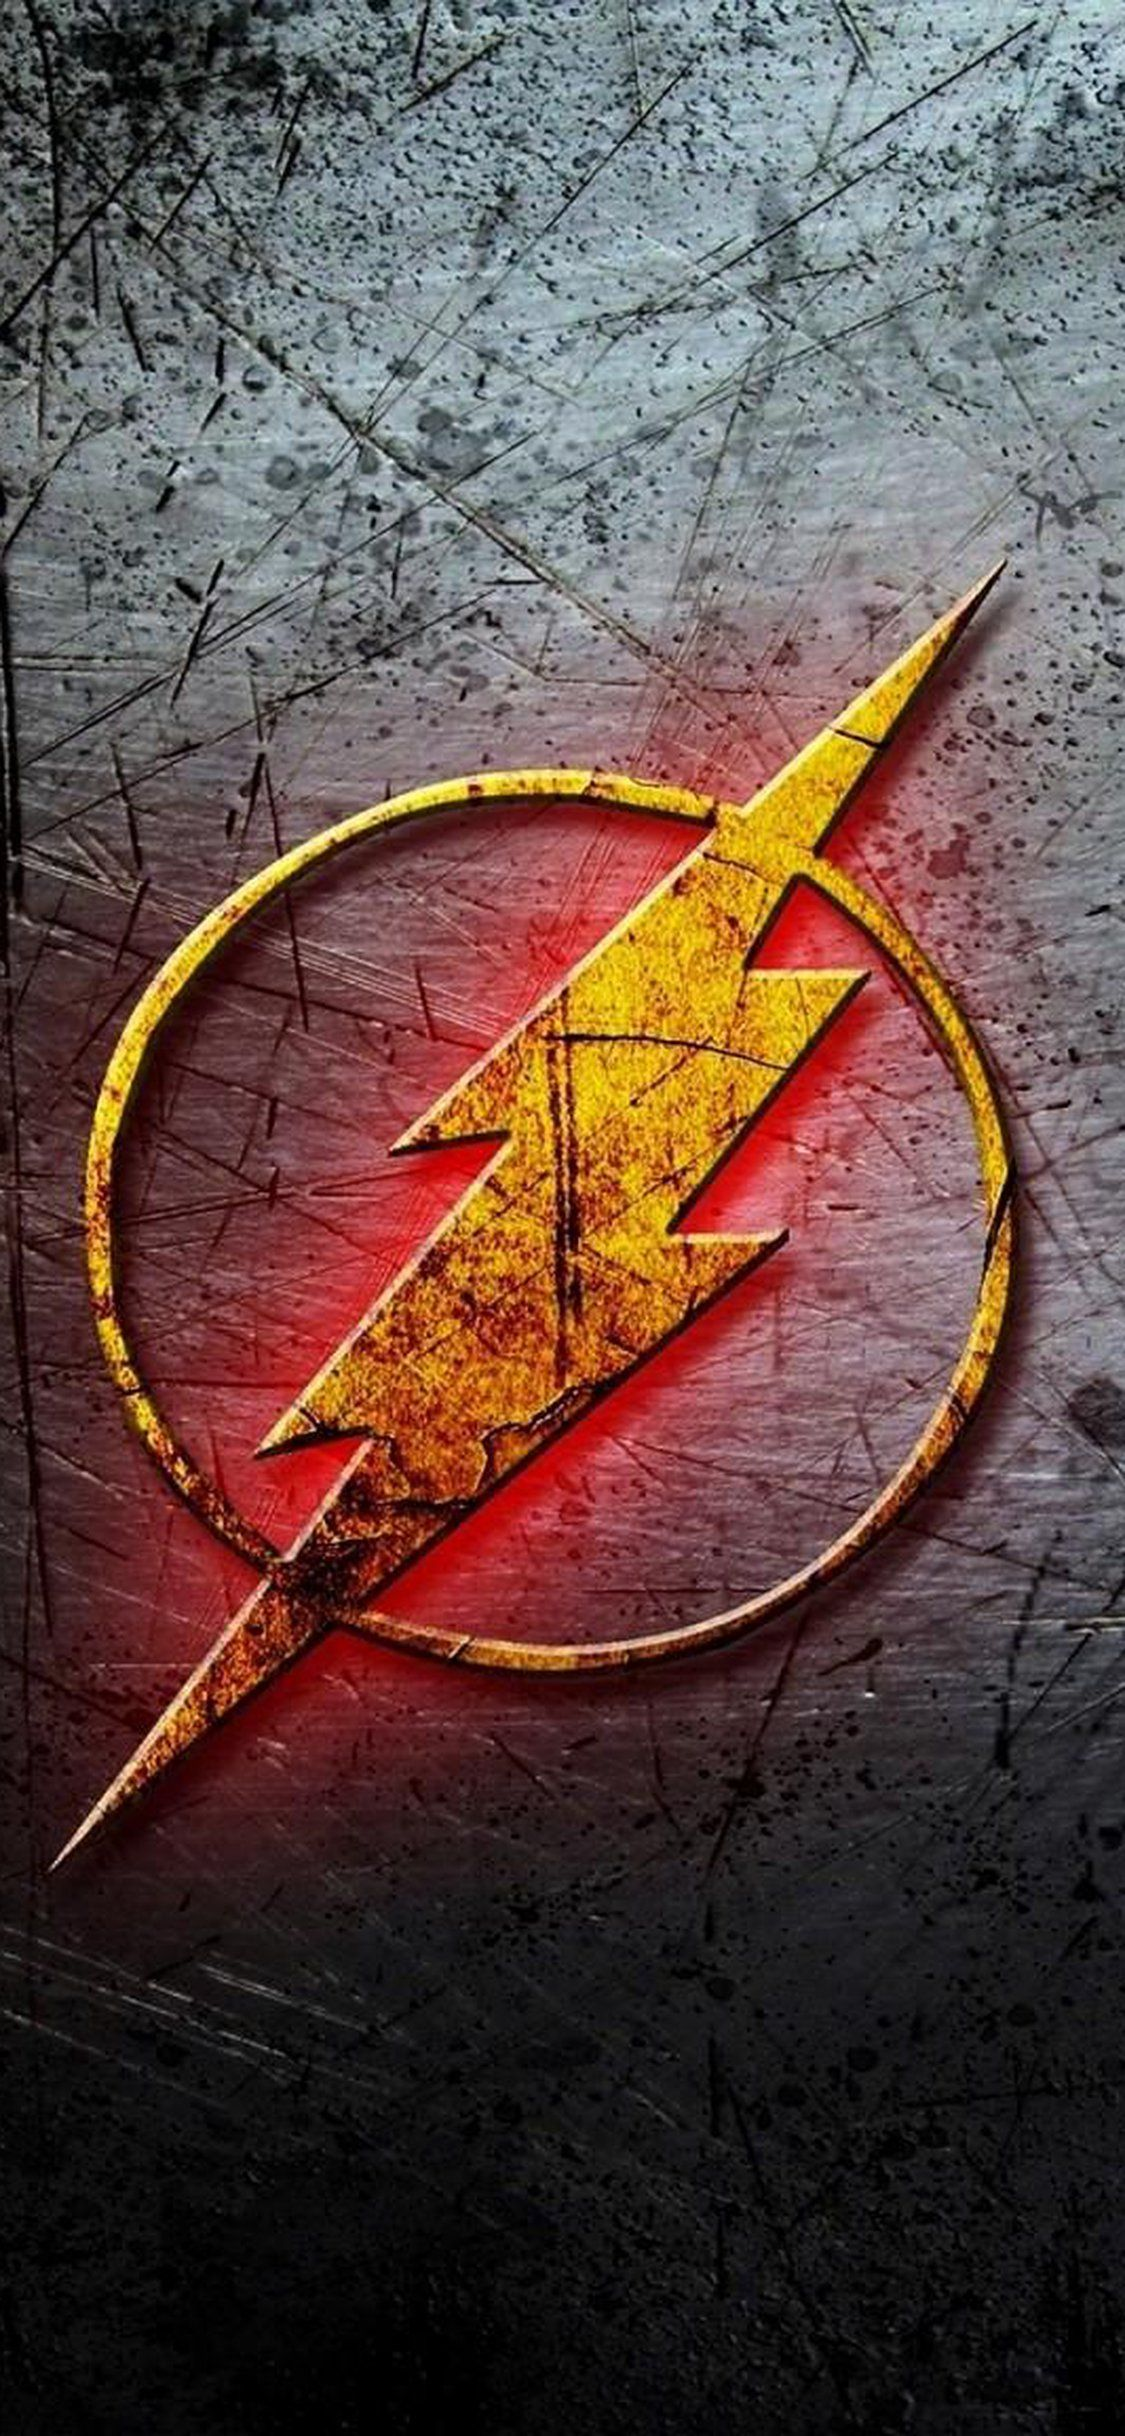 the flash pictures superhero, flash logo hd